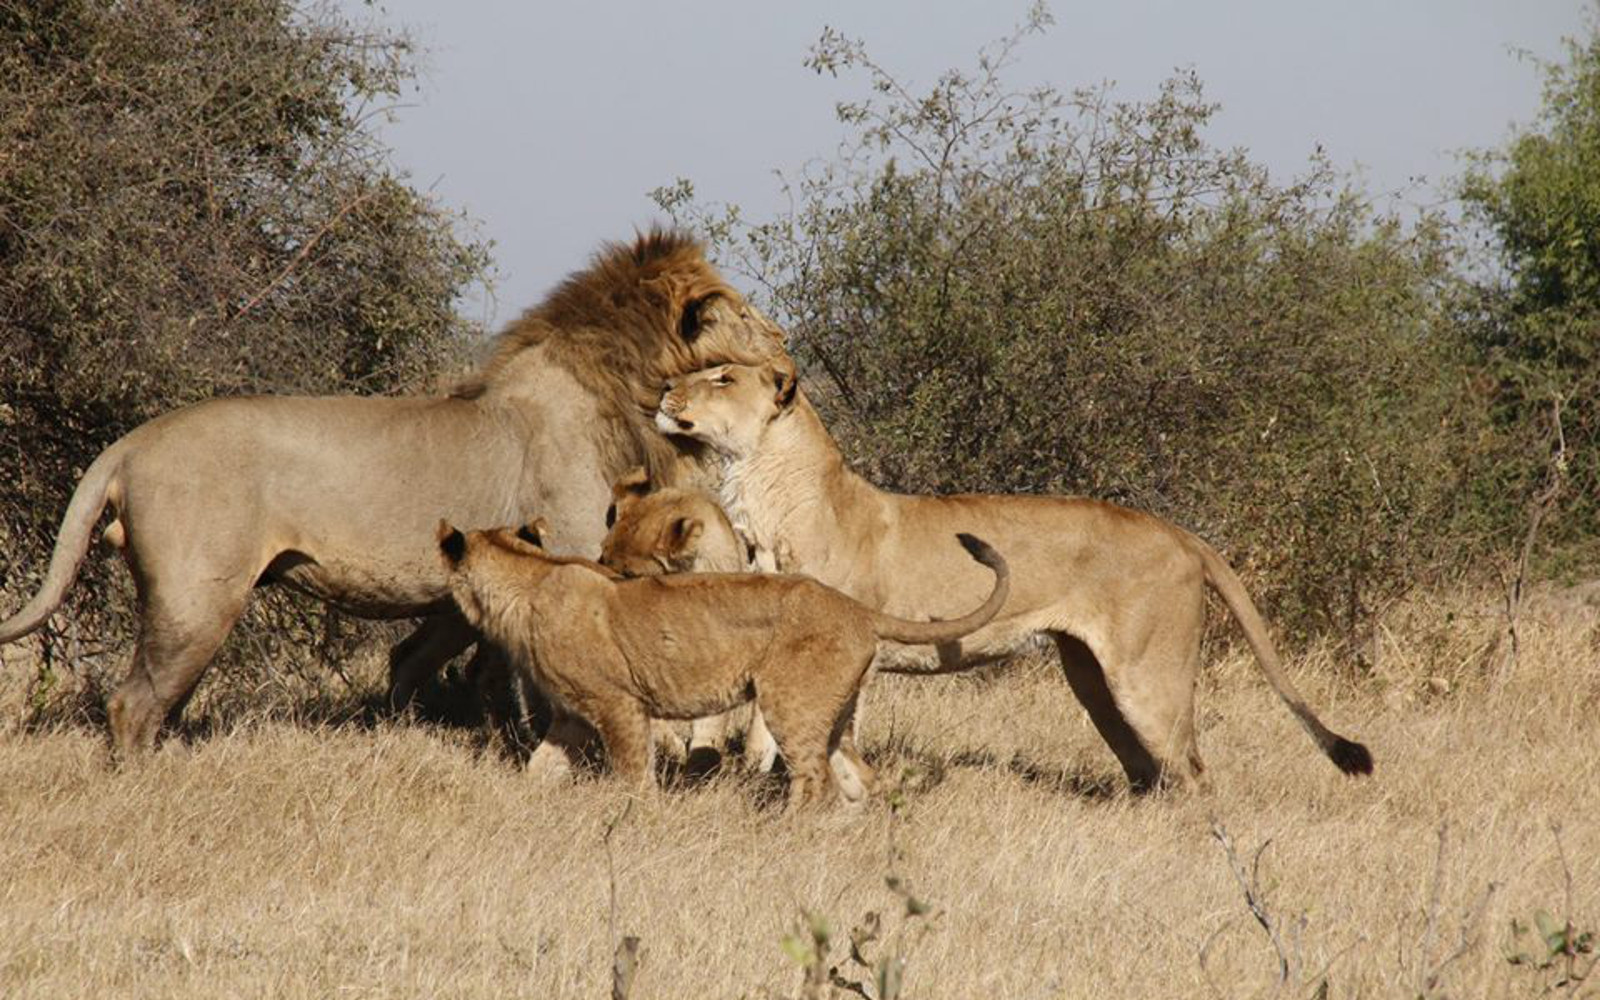 Photo of Lions Greeting Each Other After a Patrol Shows How These Animals Deserve to Live